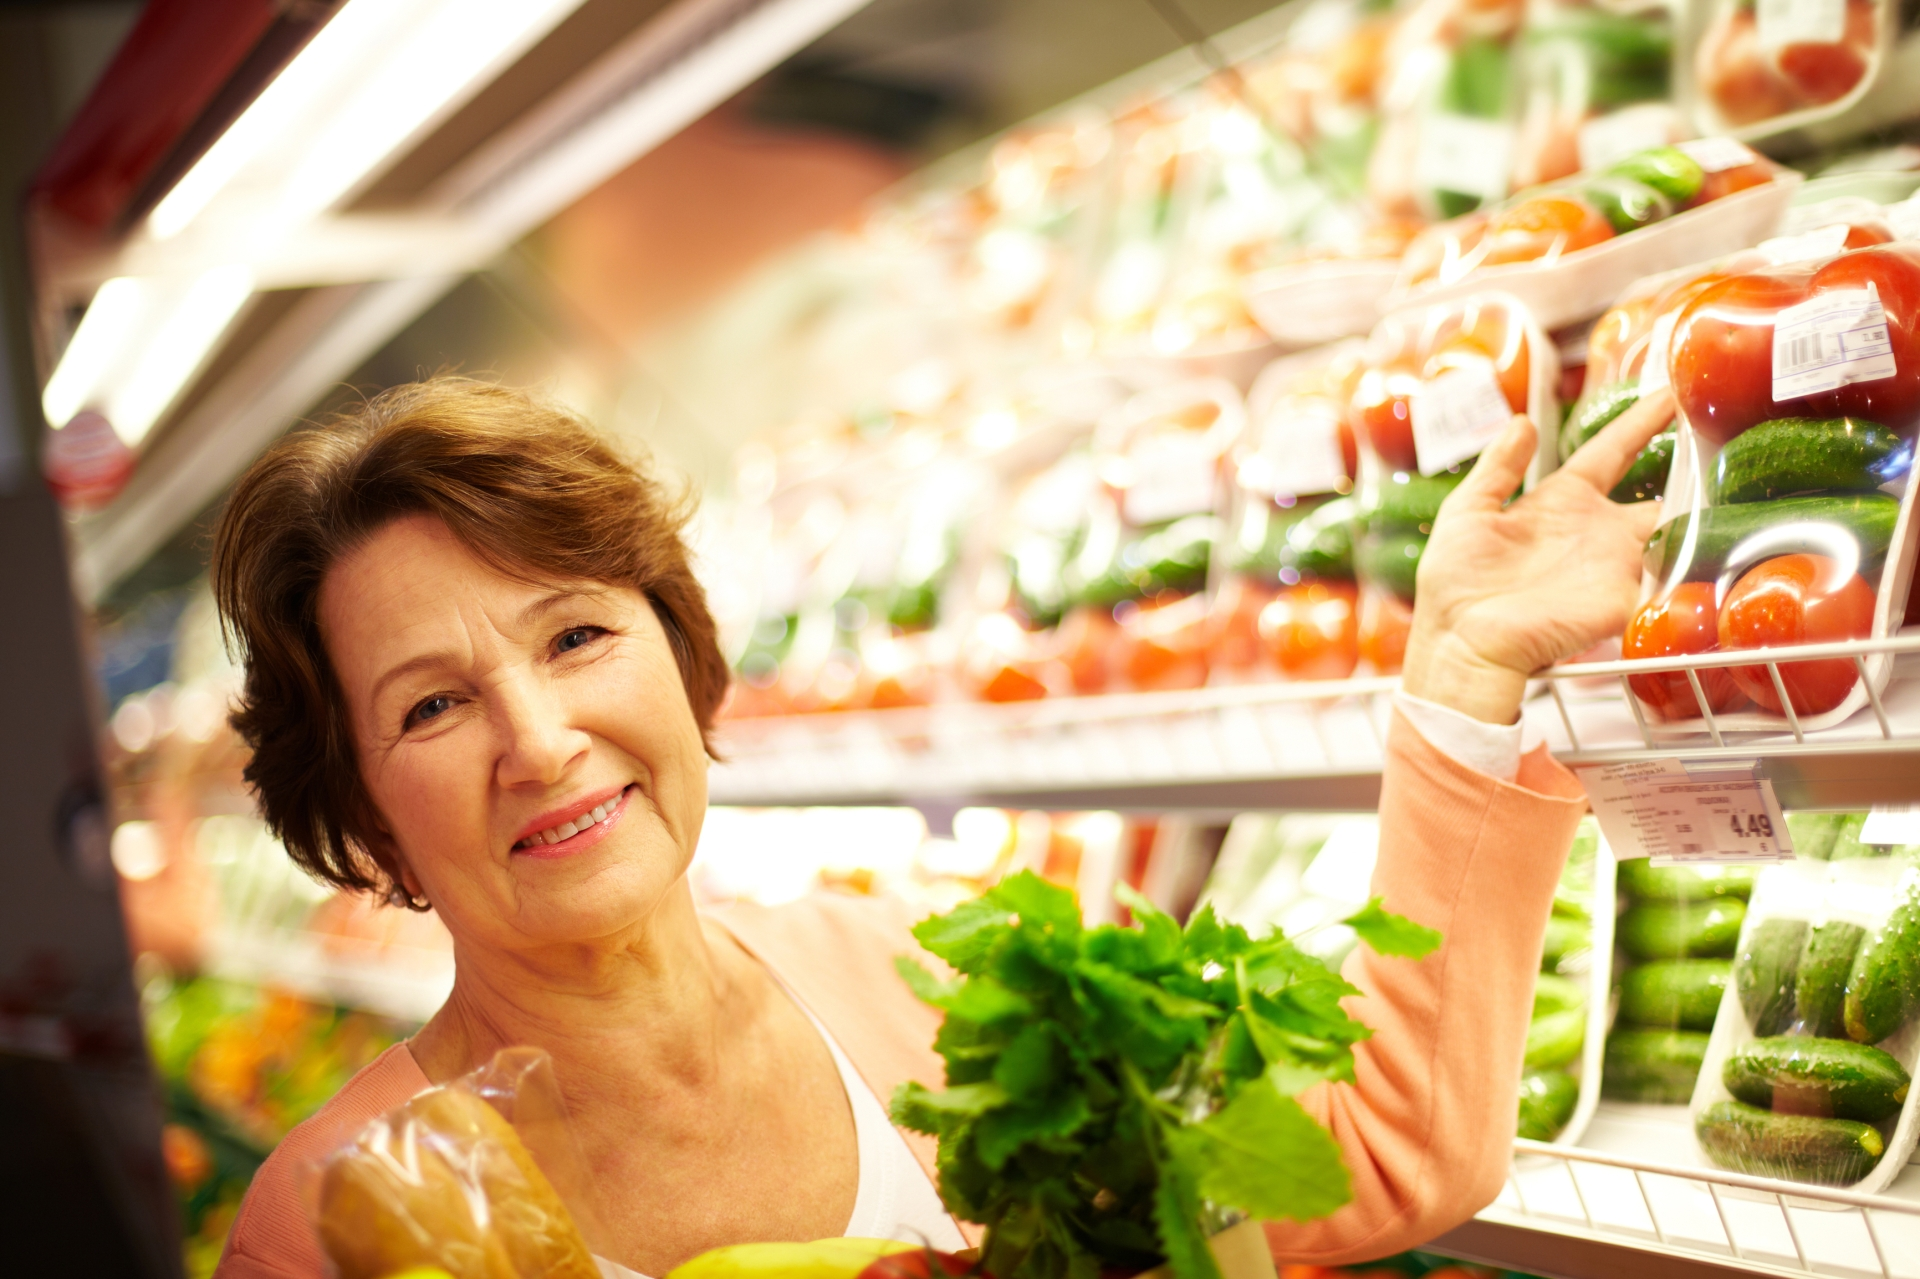 Woman smiling in the produce aisle.